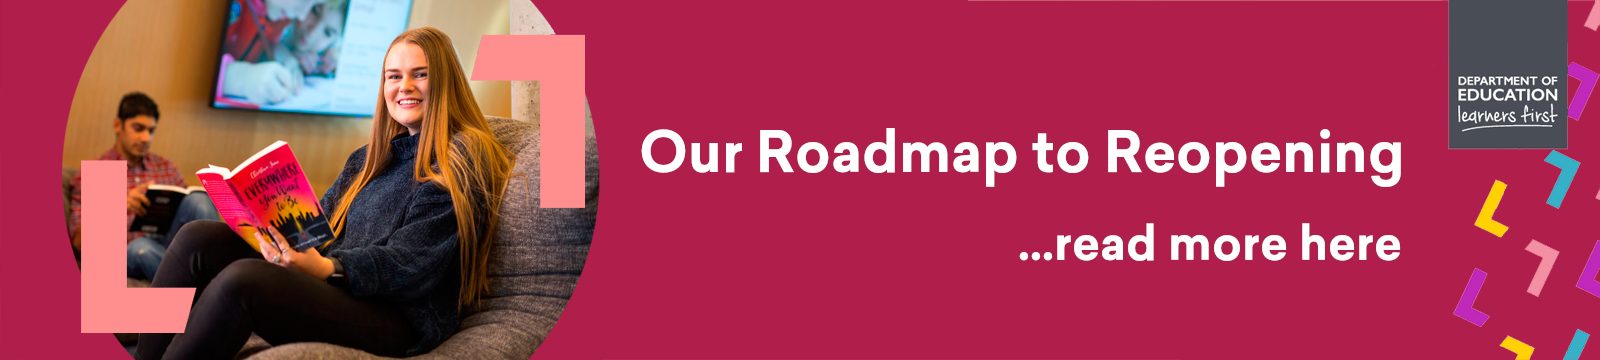 Our Roadmap to Reopening. More services coming soon. Click here for more info.